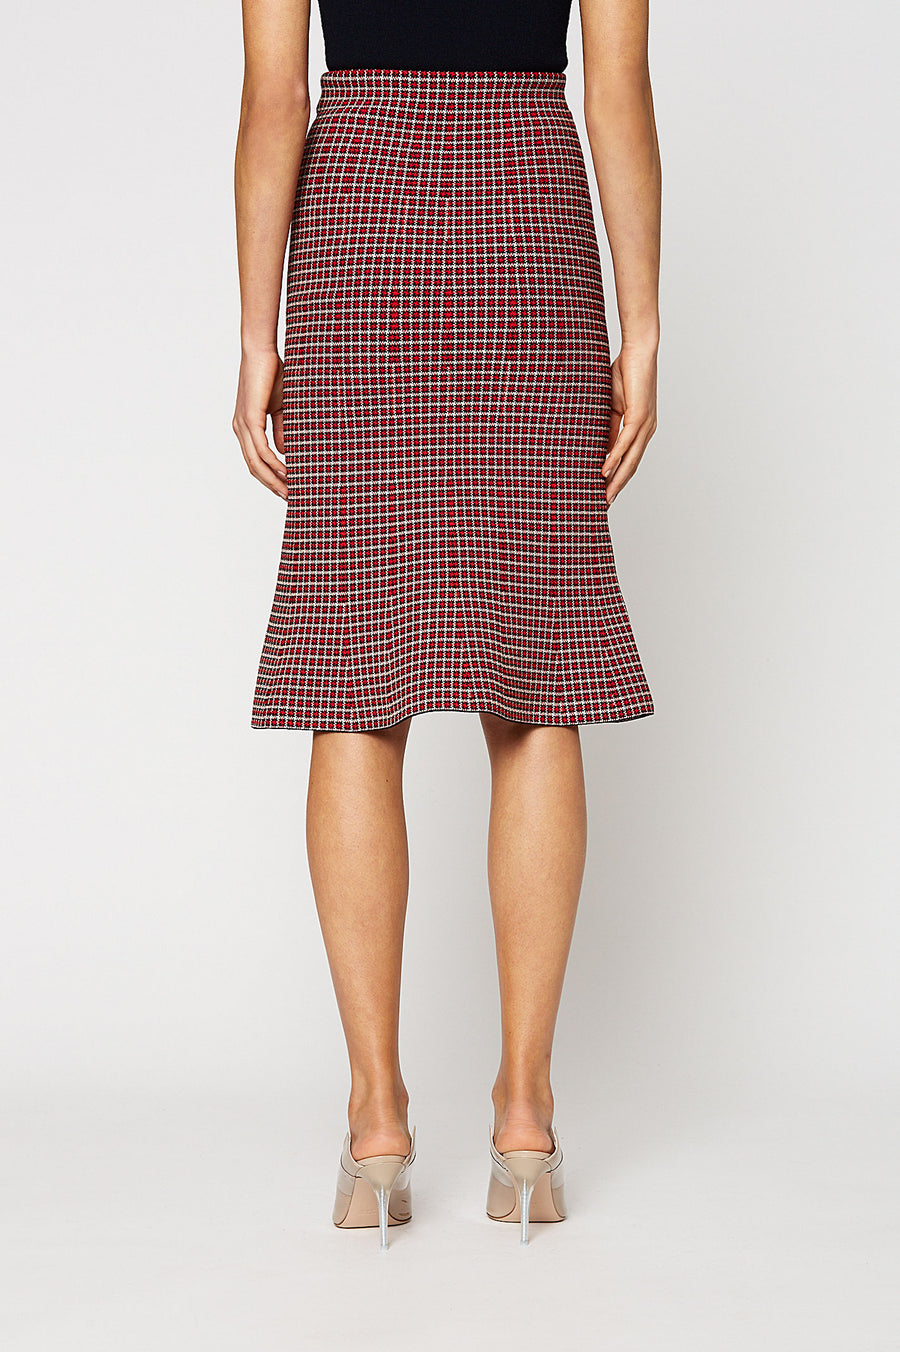 CREPE KNIT PLAID SKIRT, RED color